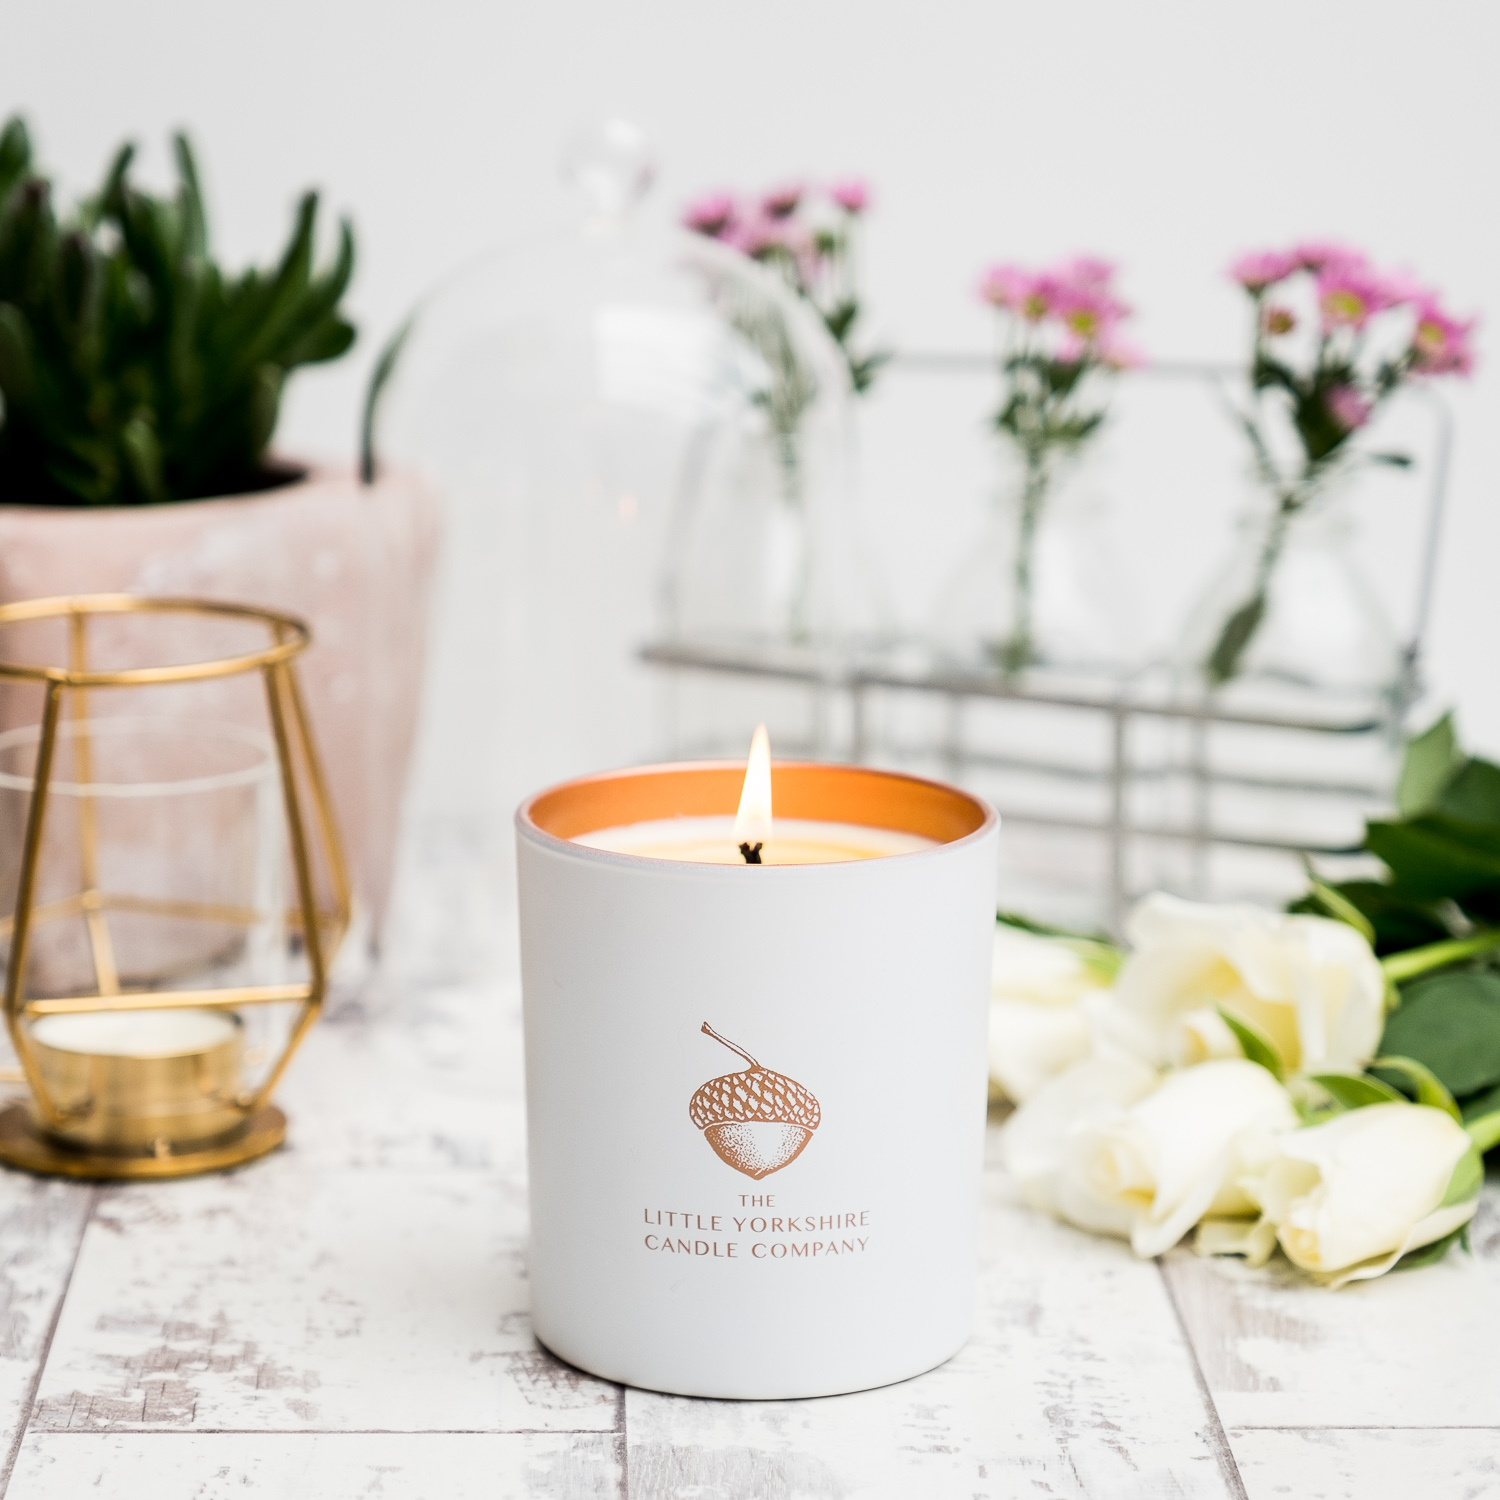 Product photography for The Little Yorkshire Candle Company